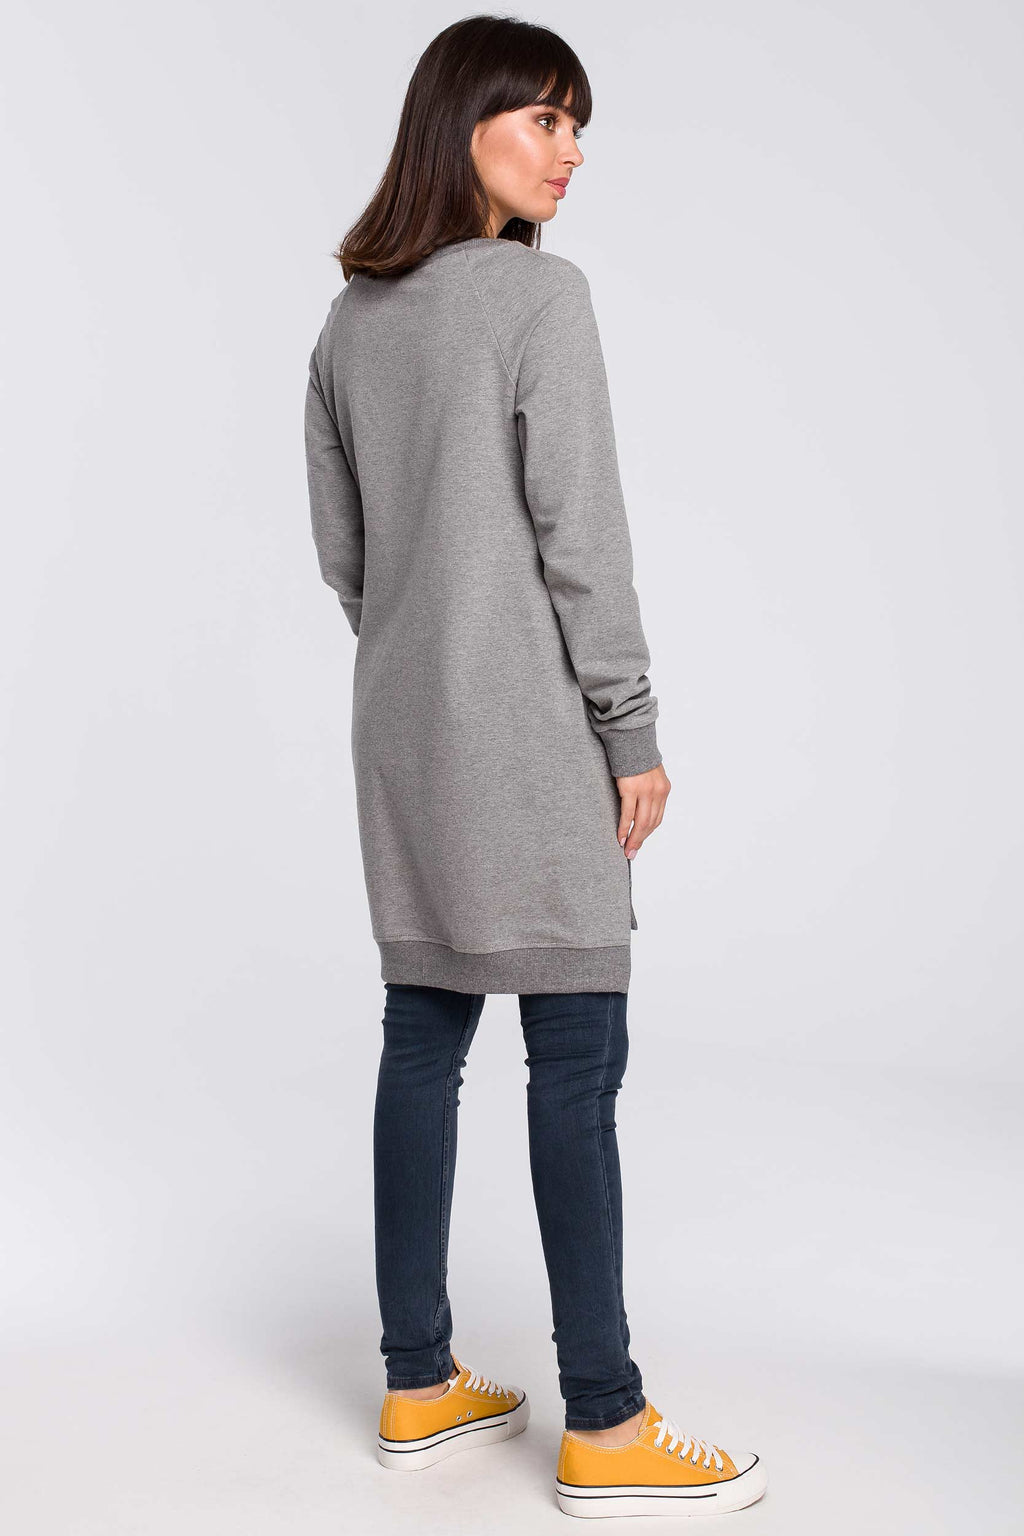 Grey Long Cotton Sweatshirt With Split Sides - So Chic Boutique